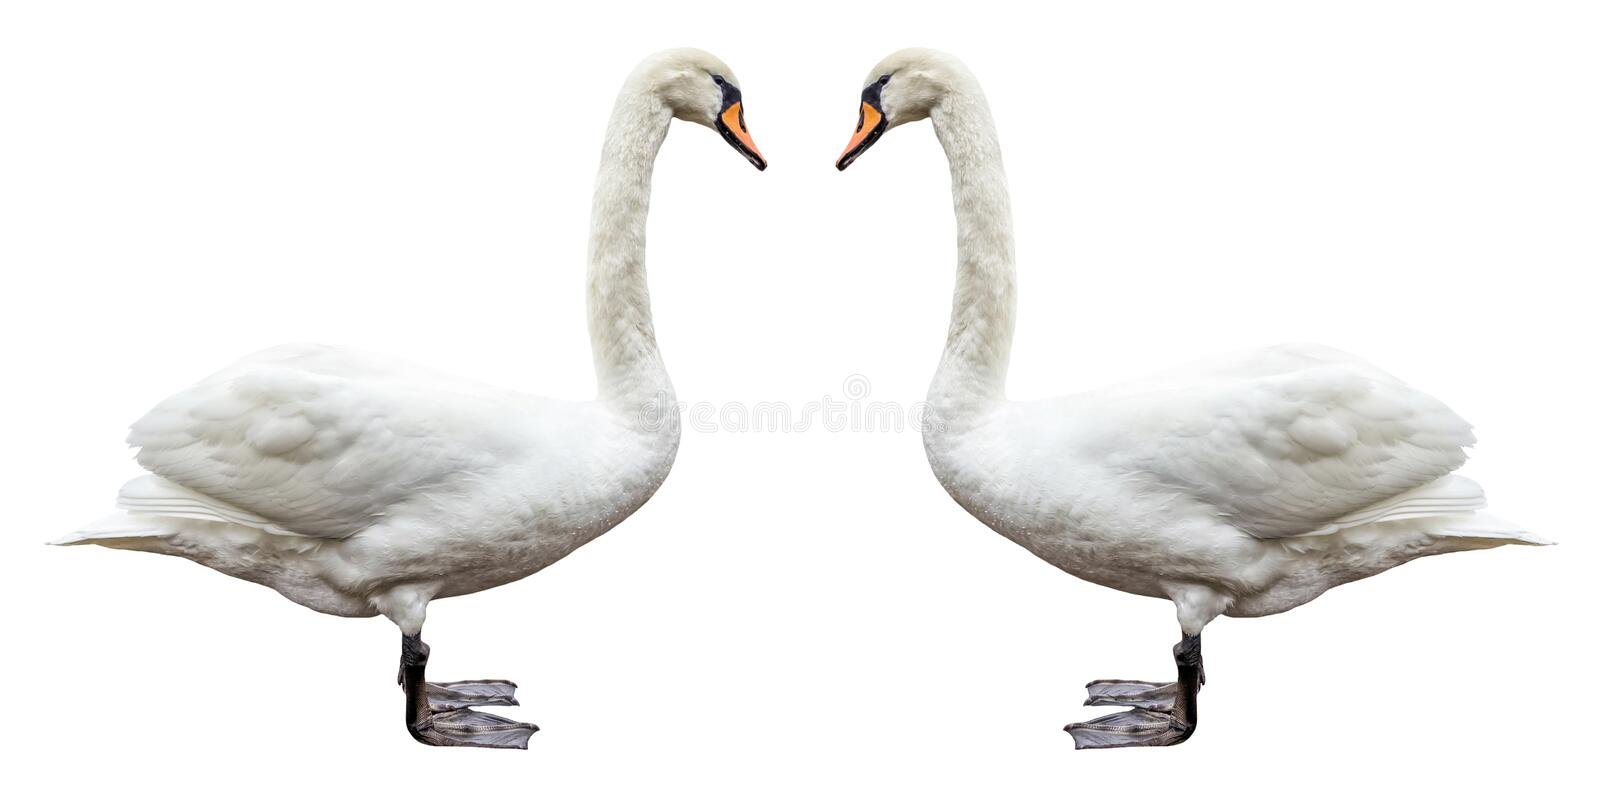 Download Bird White Swan Side View Isolated. Stock Image - Image of brute, beautiful: 91251255